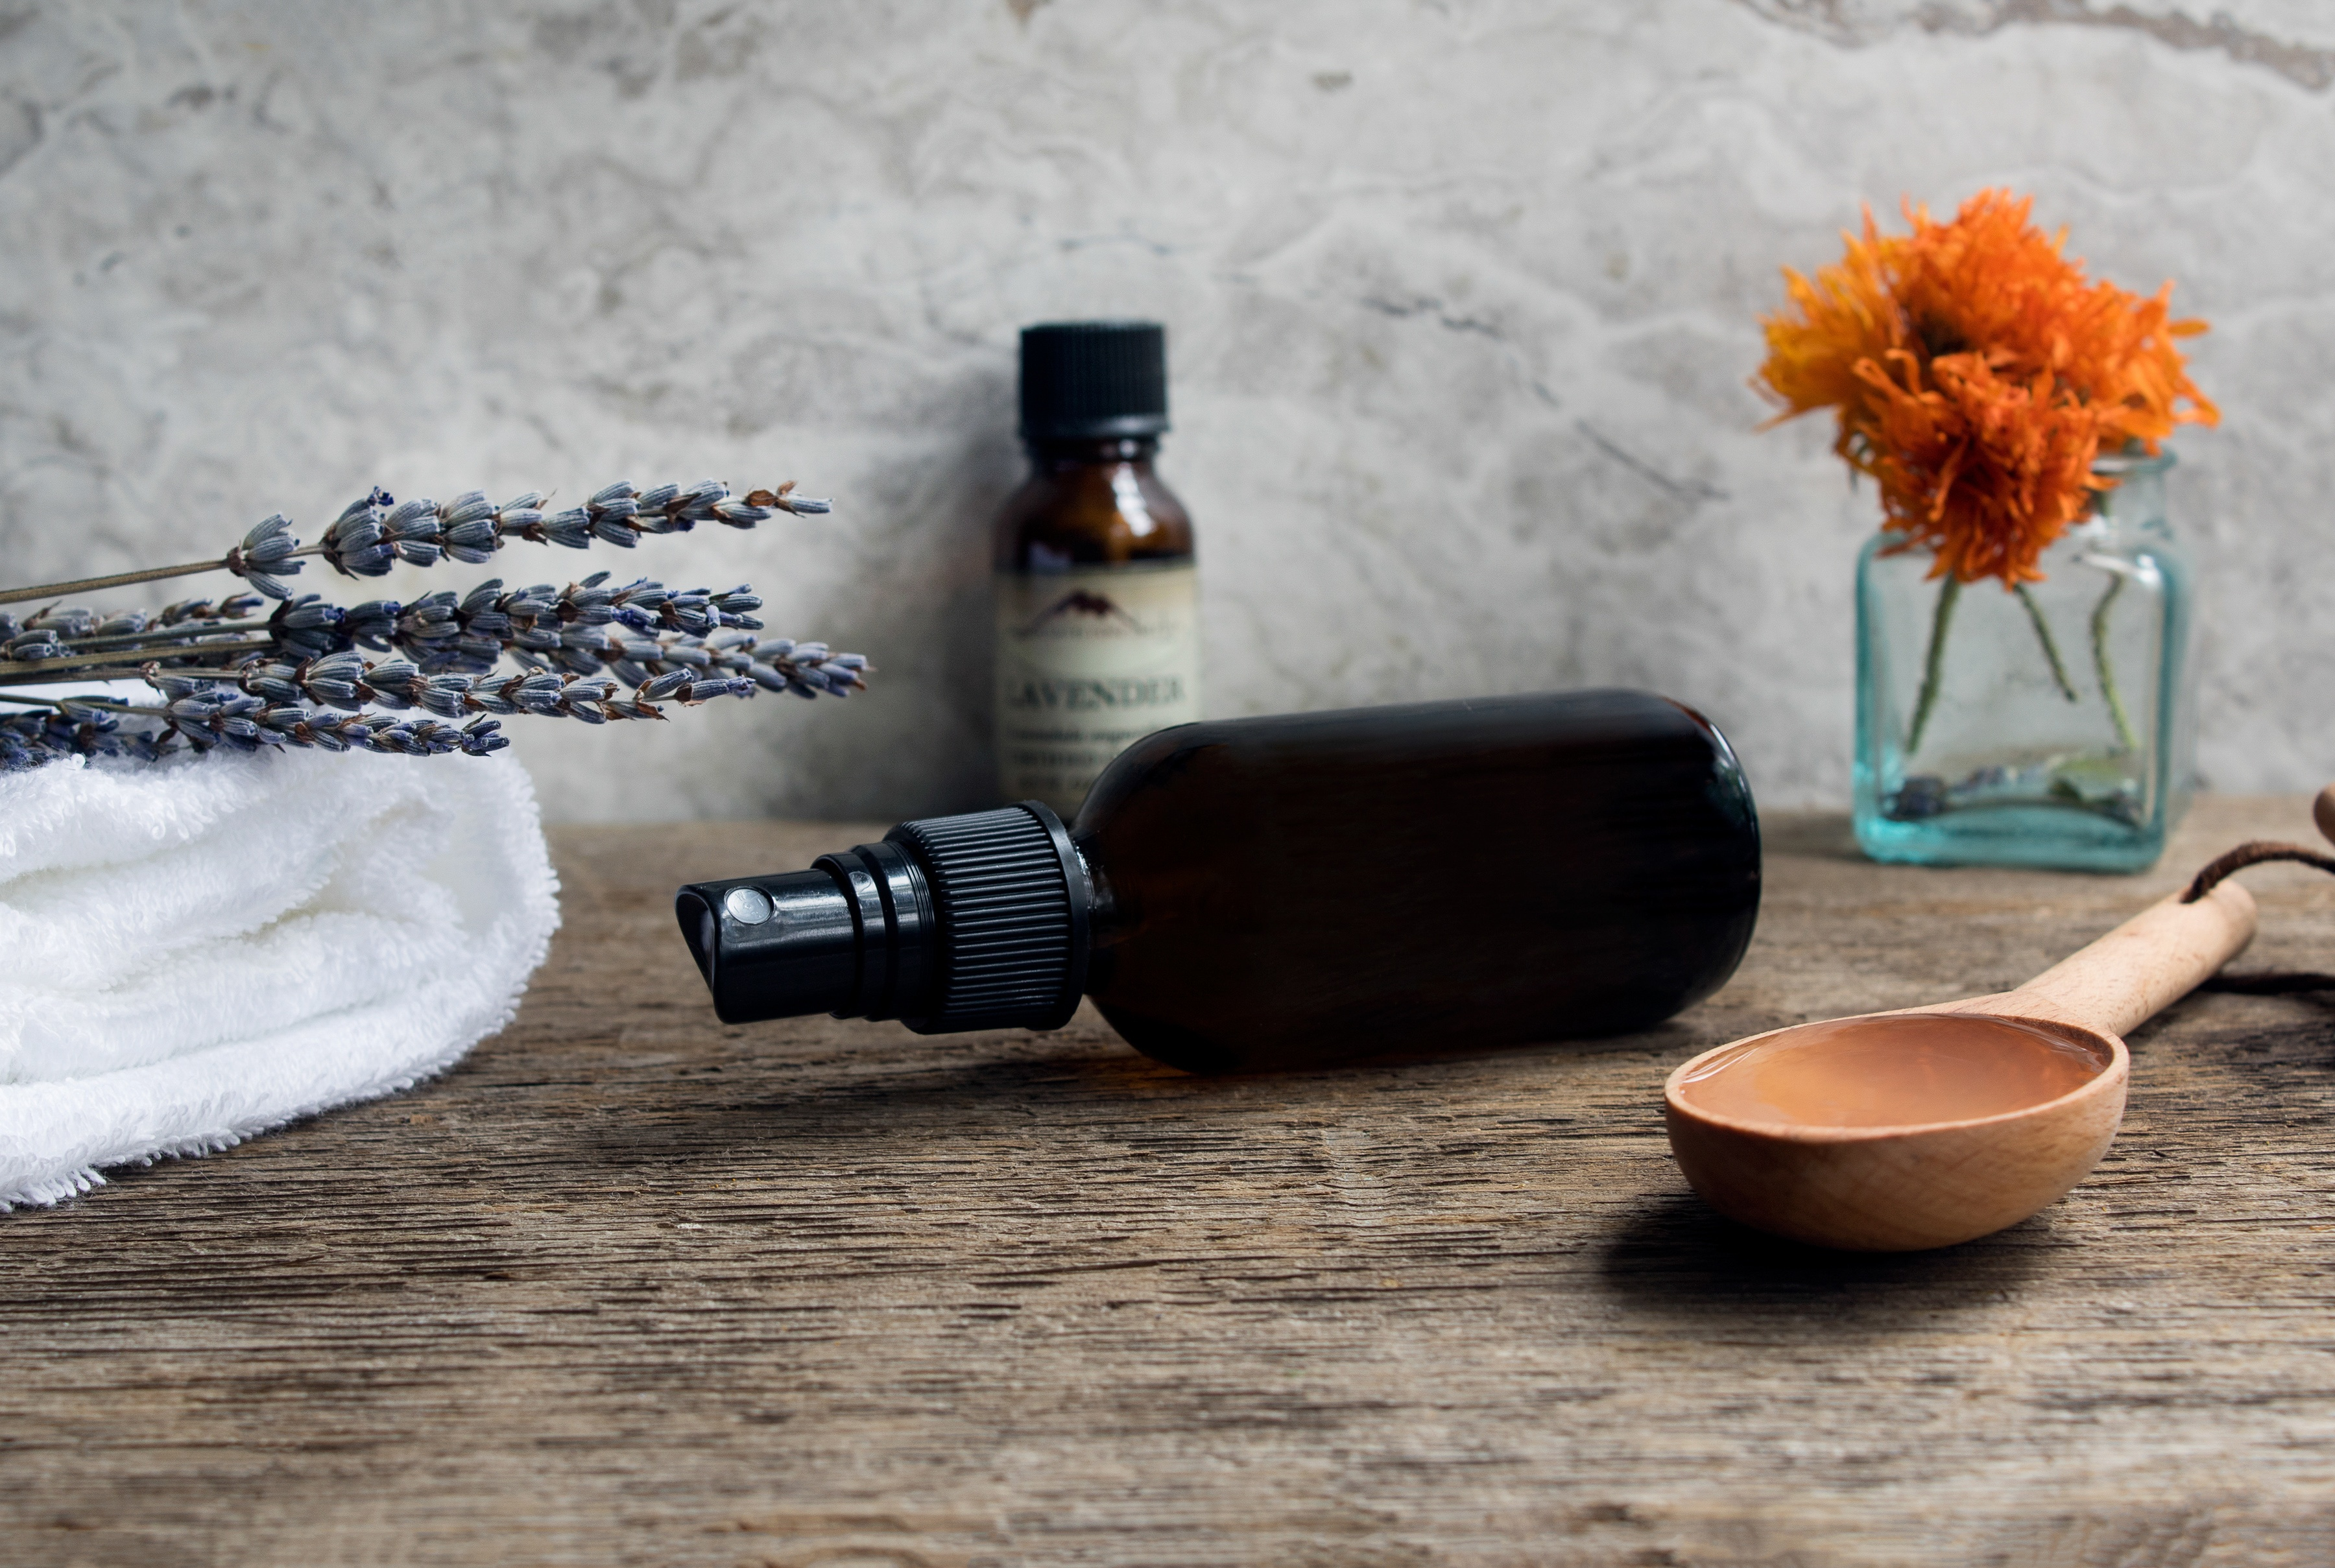 Small mister bottle laying on side on wooden surface next to wooden spoon and lavender